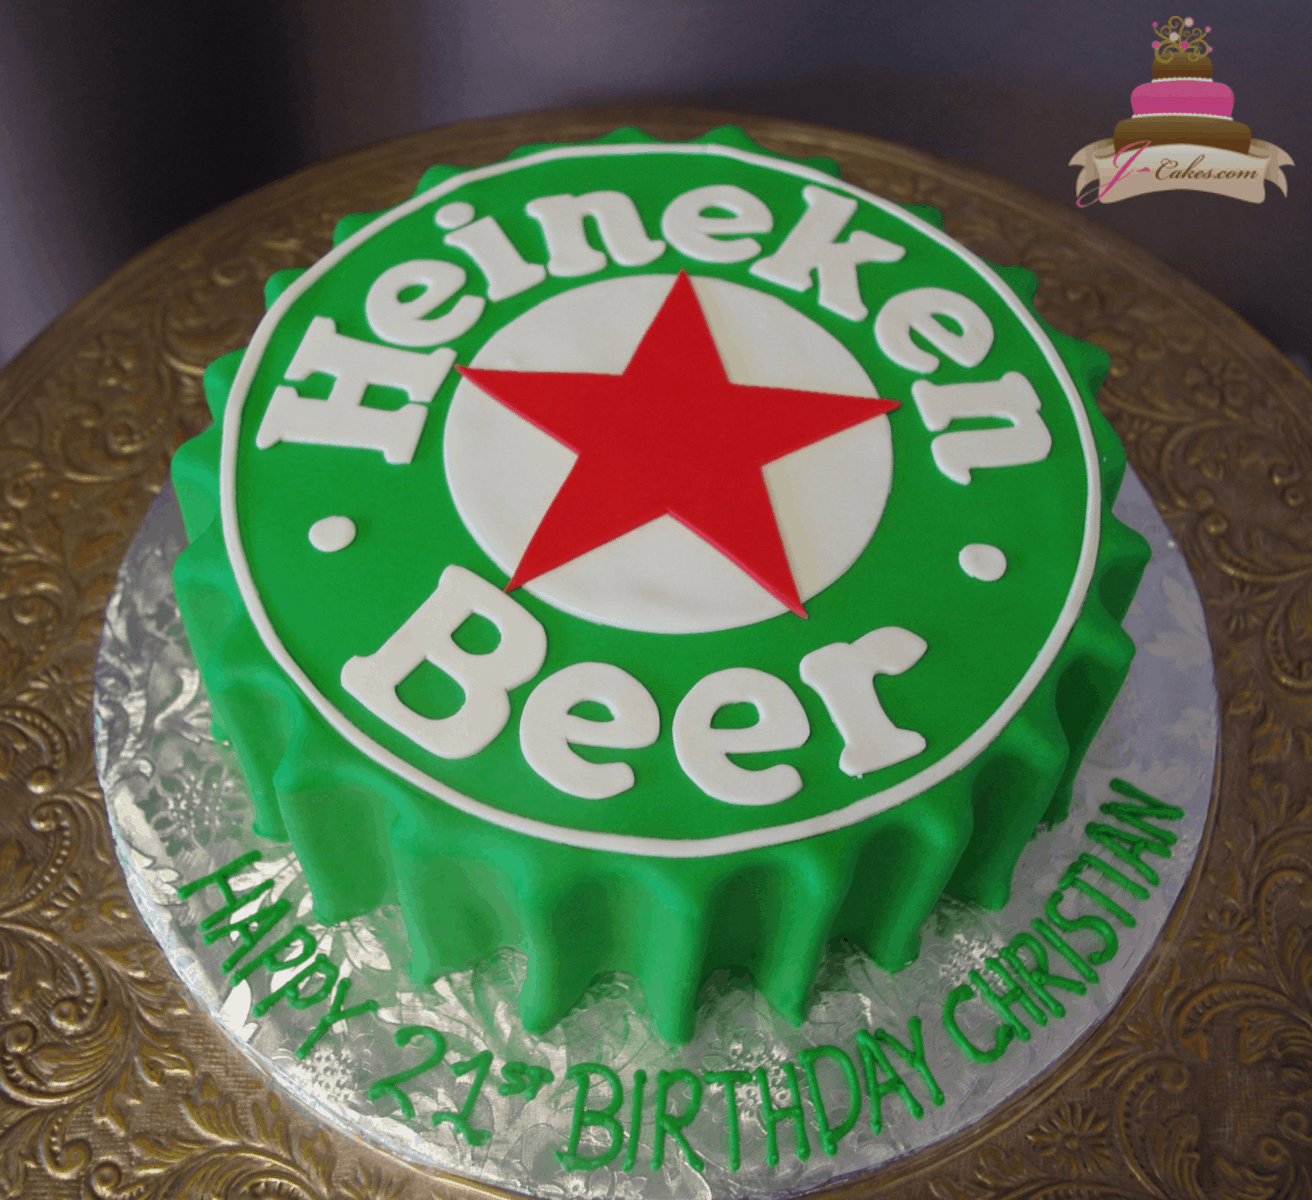 (190) Heineken Bottle Cap Cake